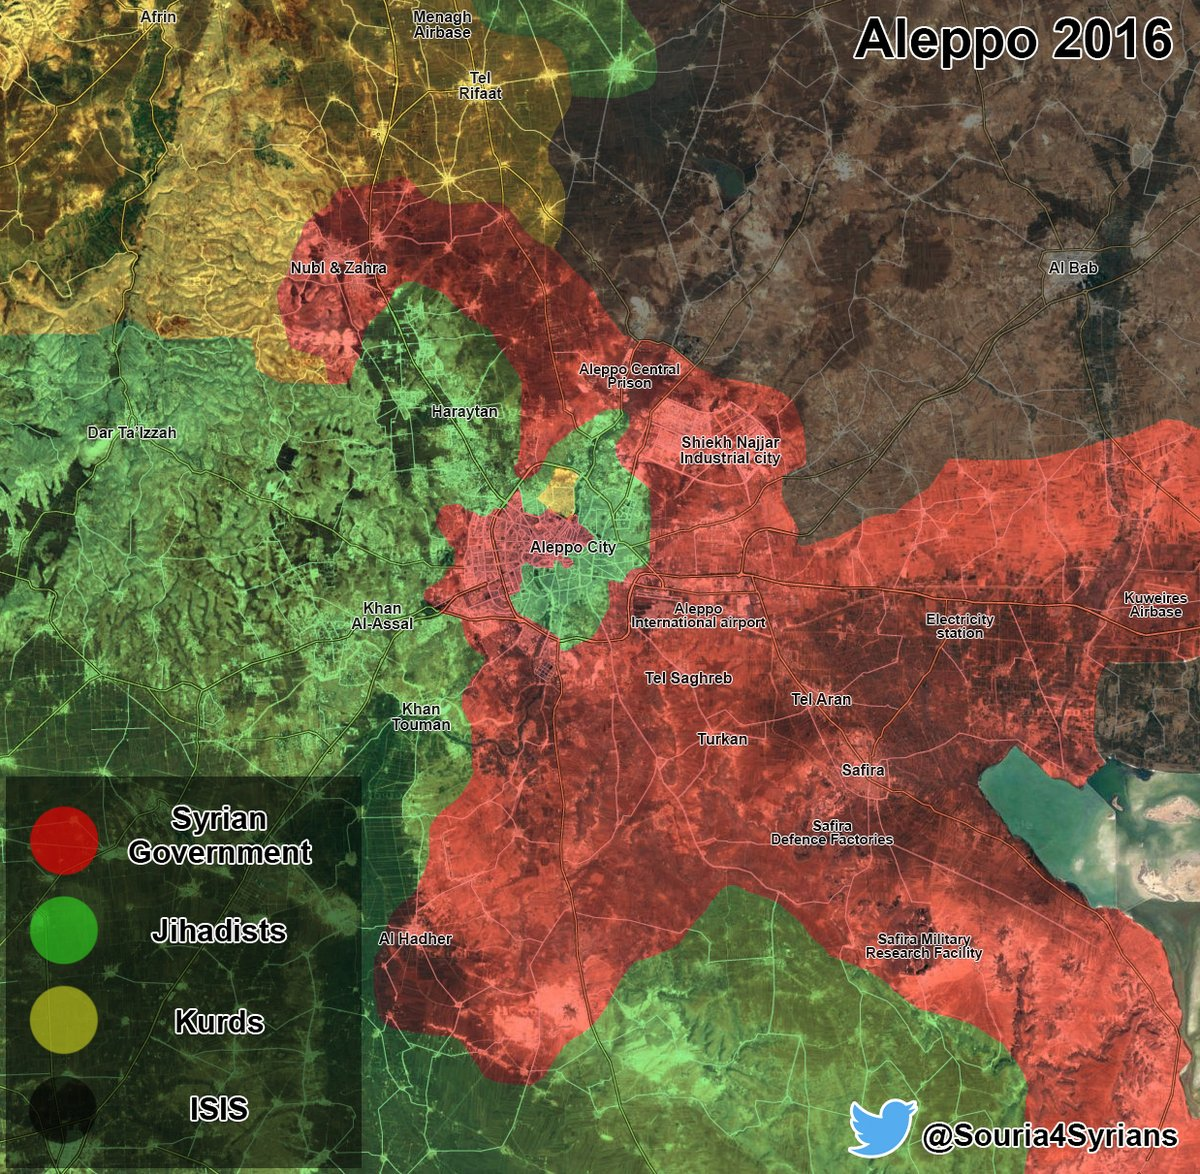 Maps Comparison: Aleppo City in 2013 vs Aleppo City in 2016